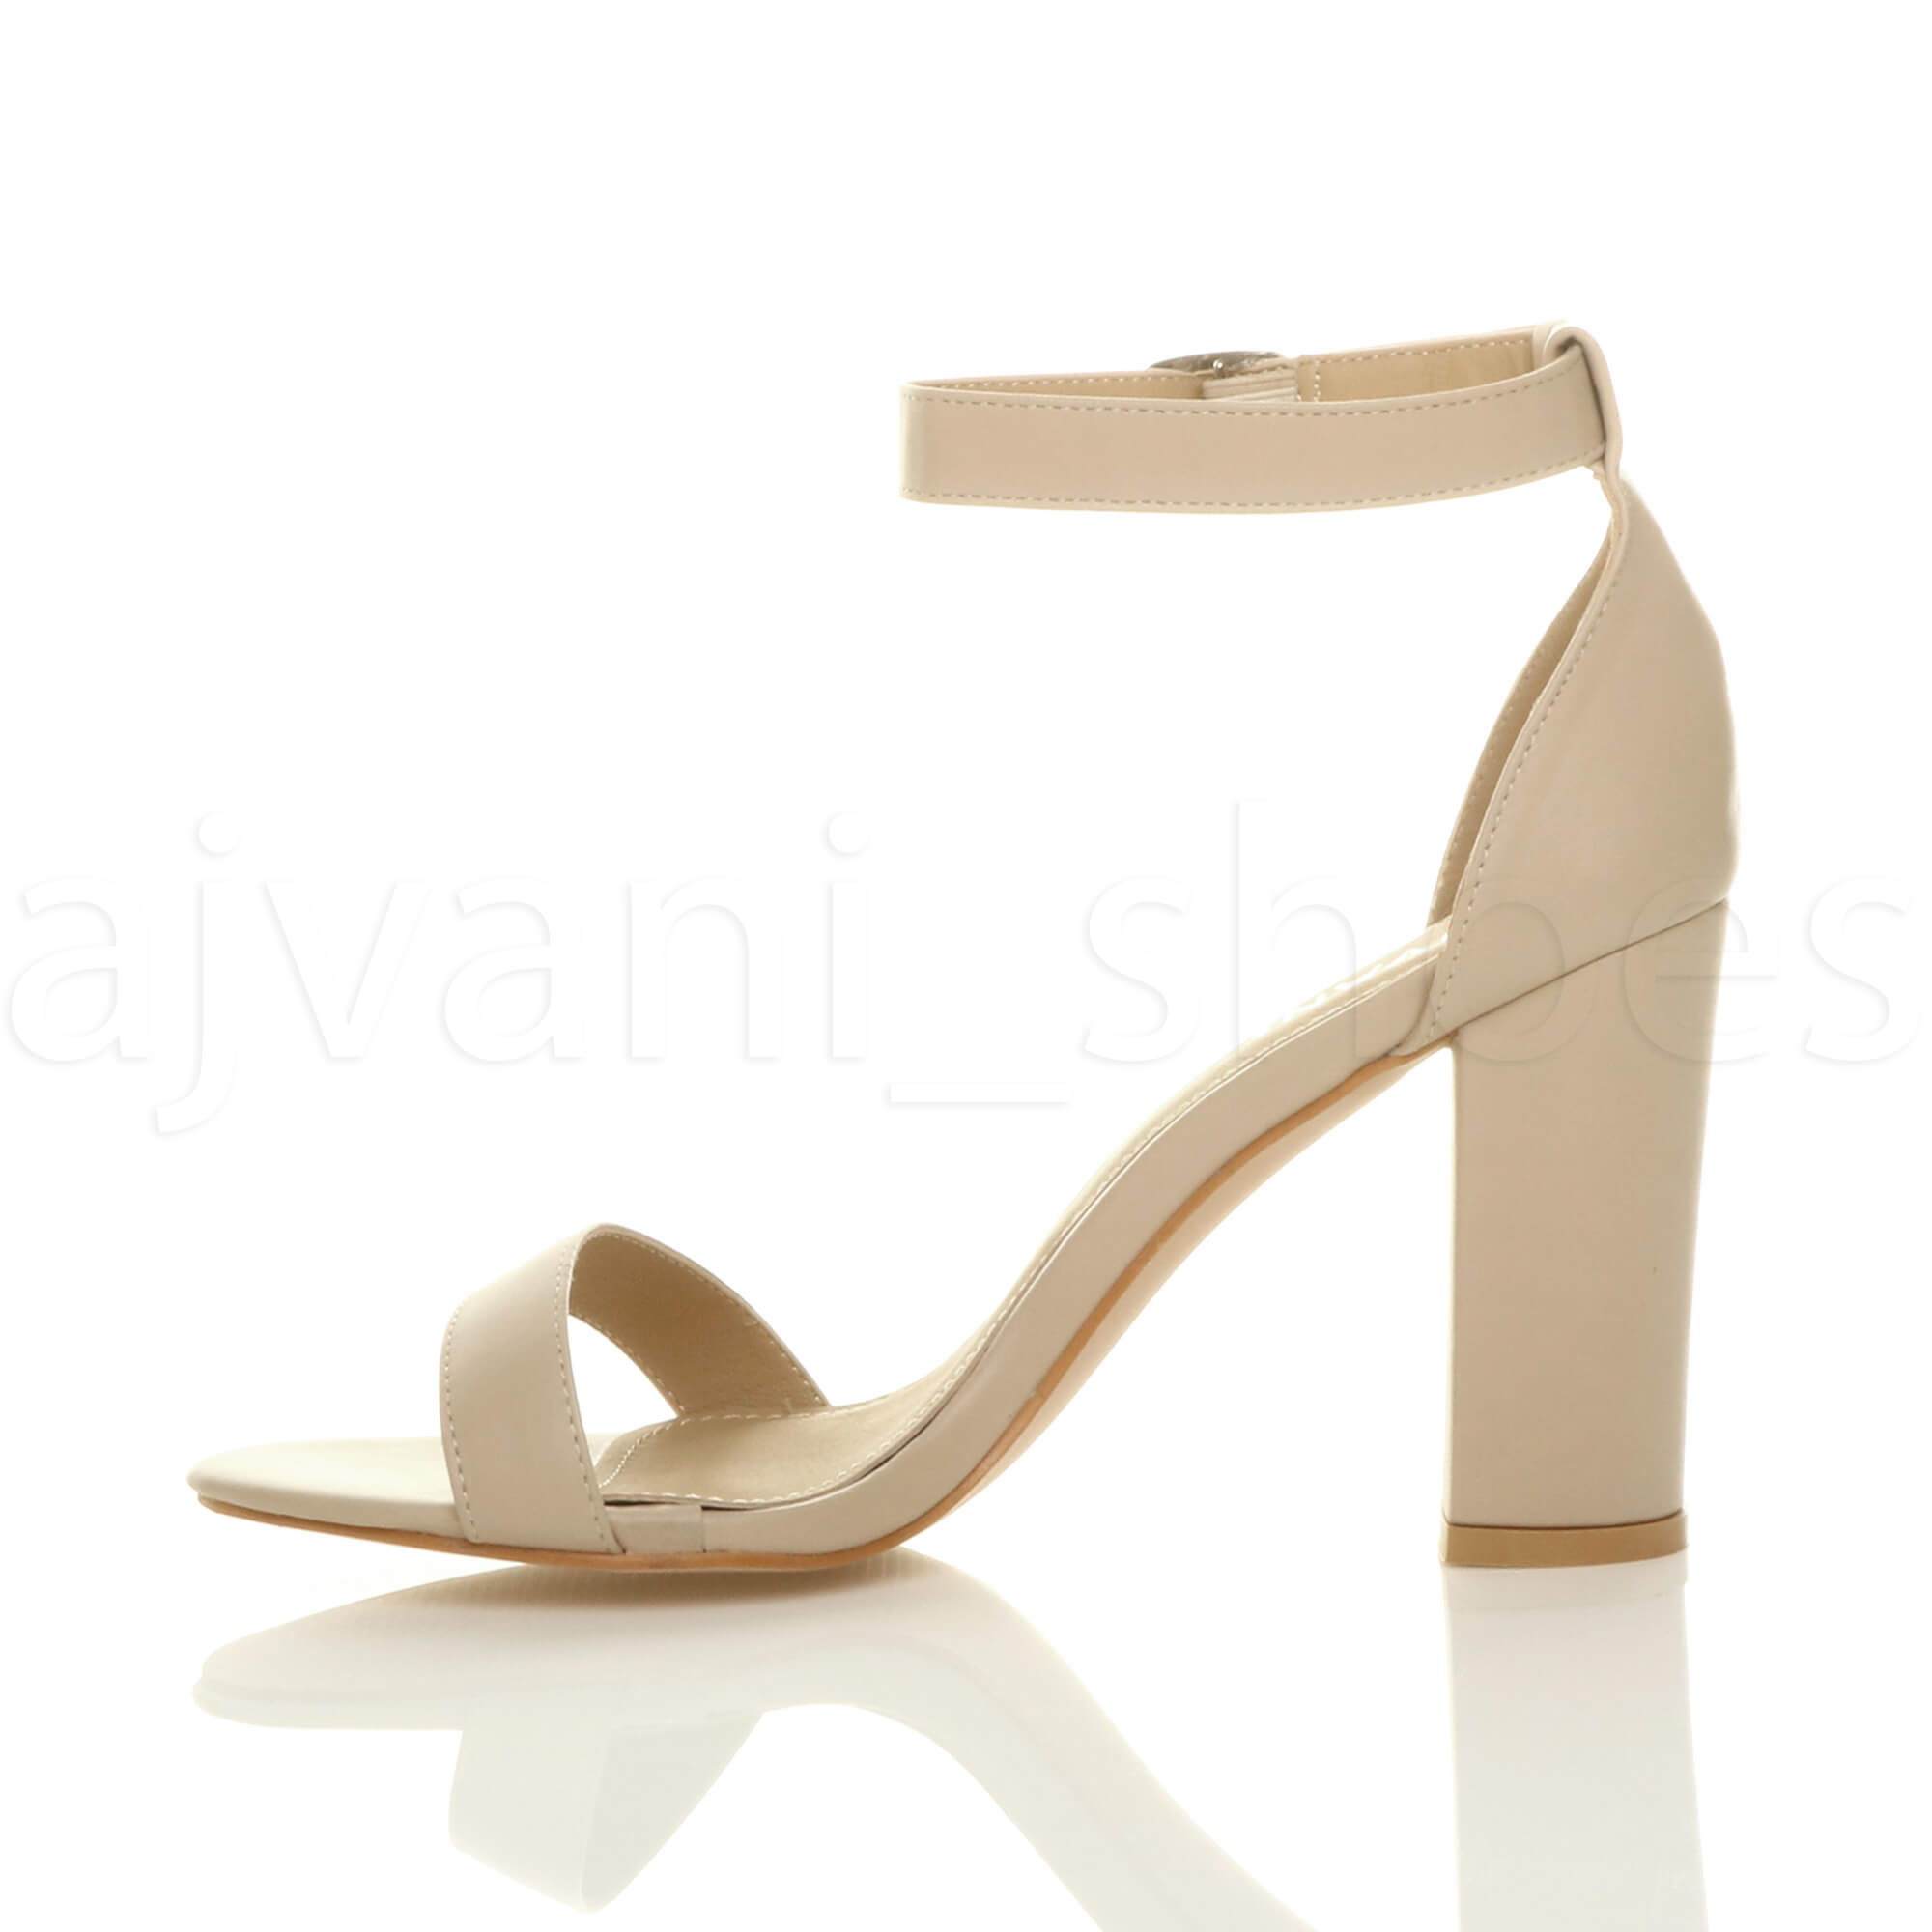 WOMENS-LADIES-BLOCK-HIGH-HEEL-ANKLE-STRAP-PEEP-TOE-STRAPPY-SANDALS-SHOES-SIZE thumbnail 97